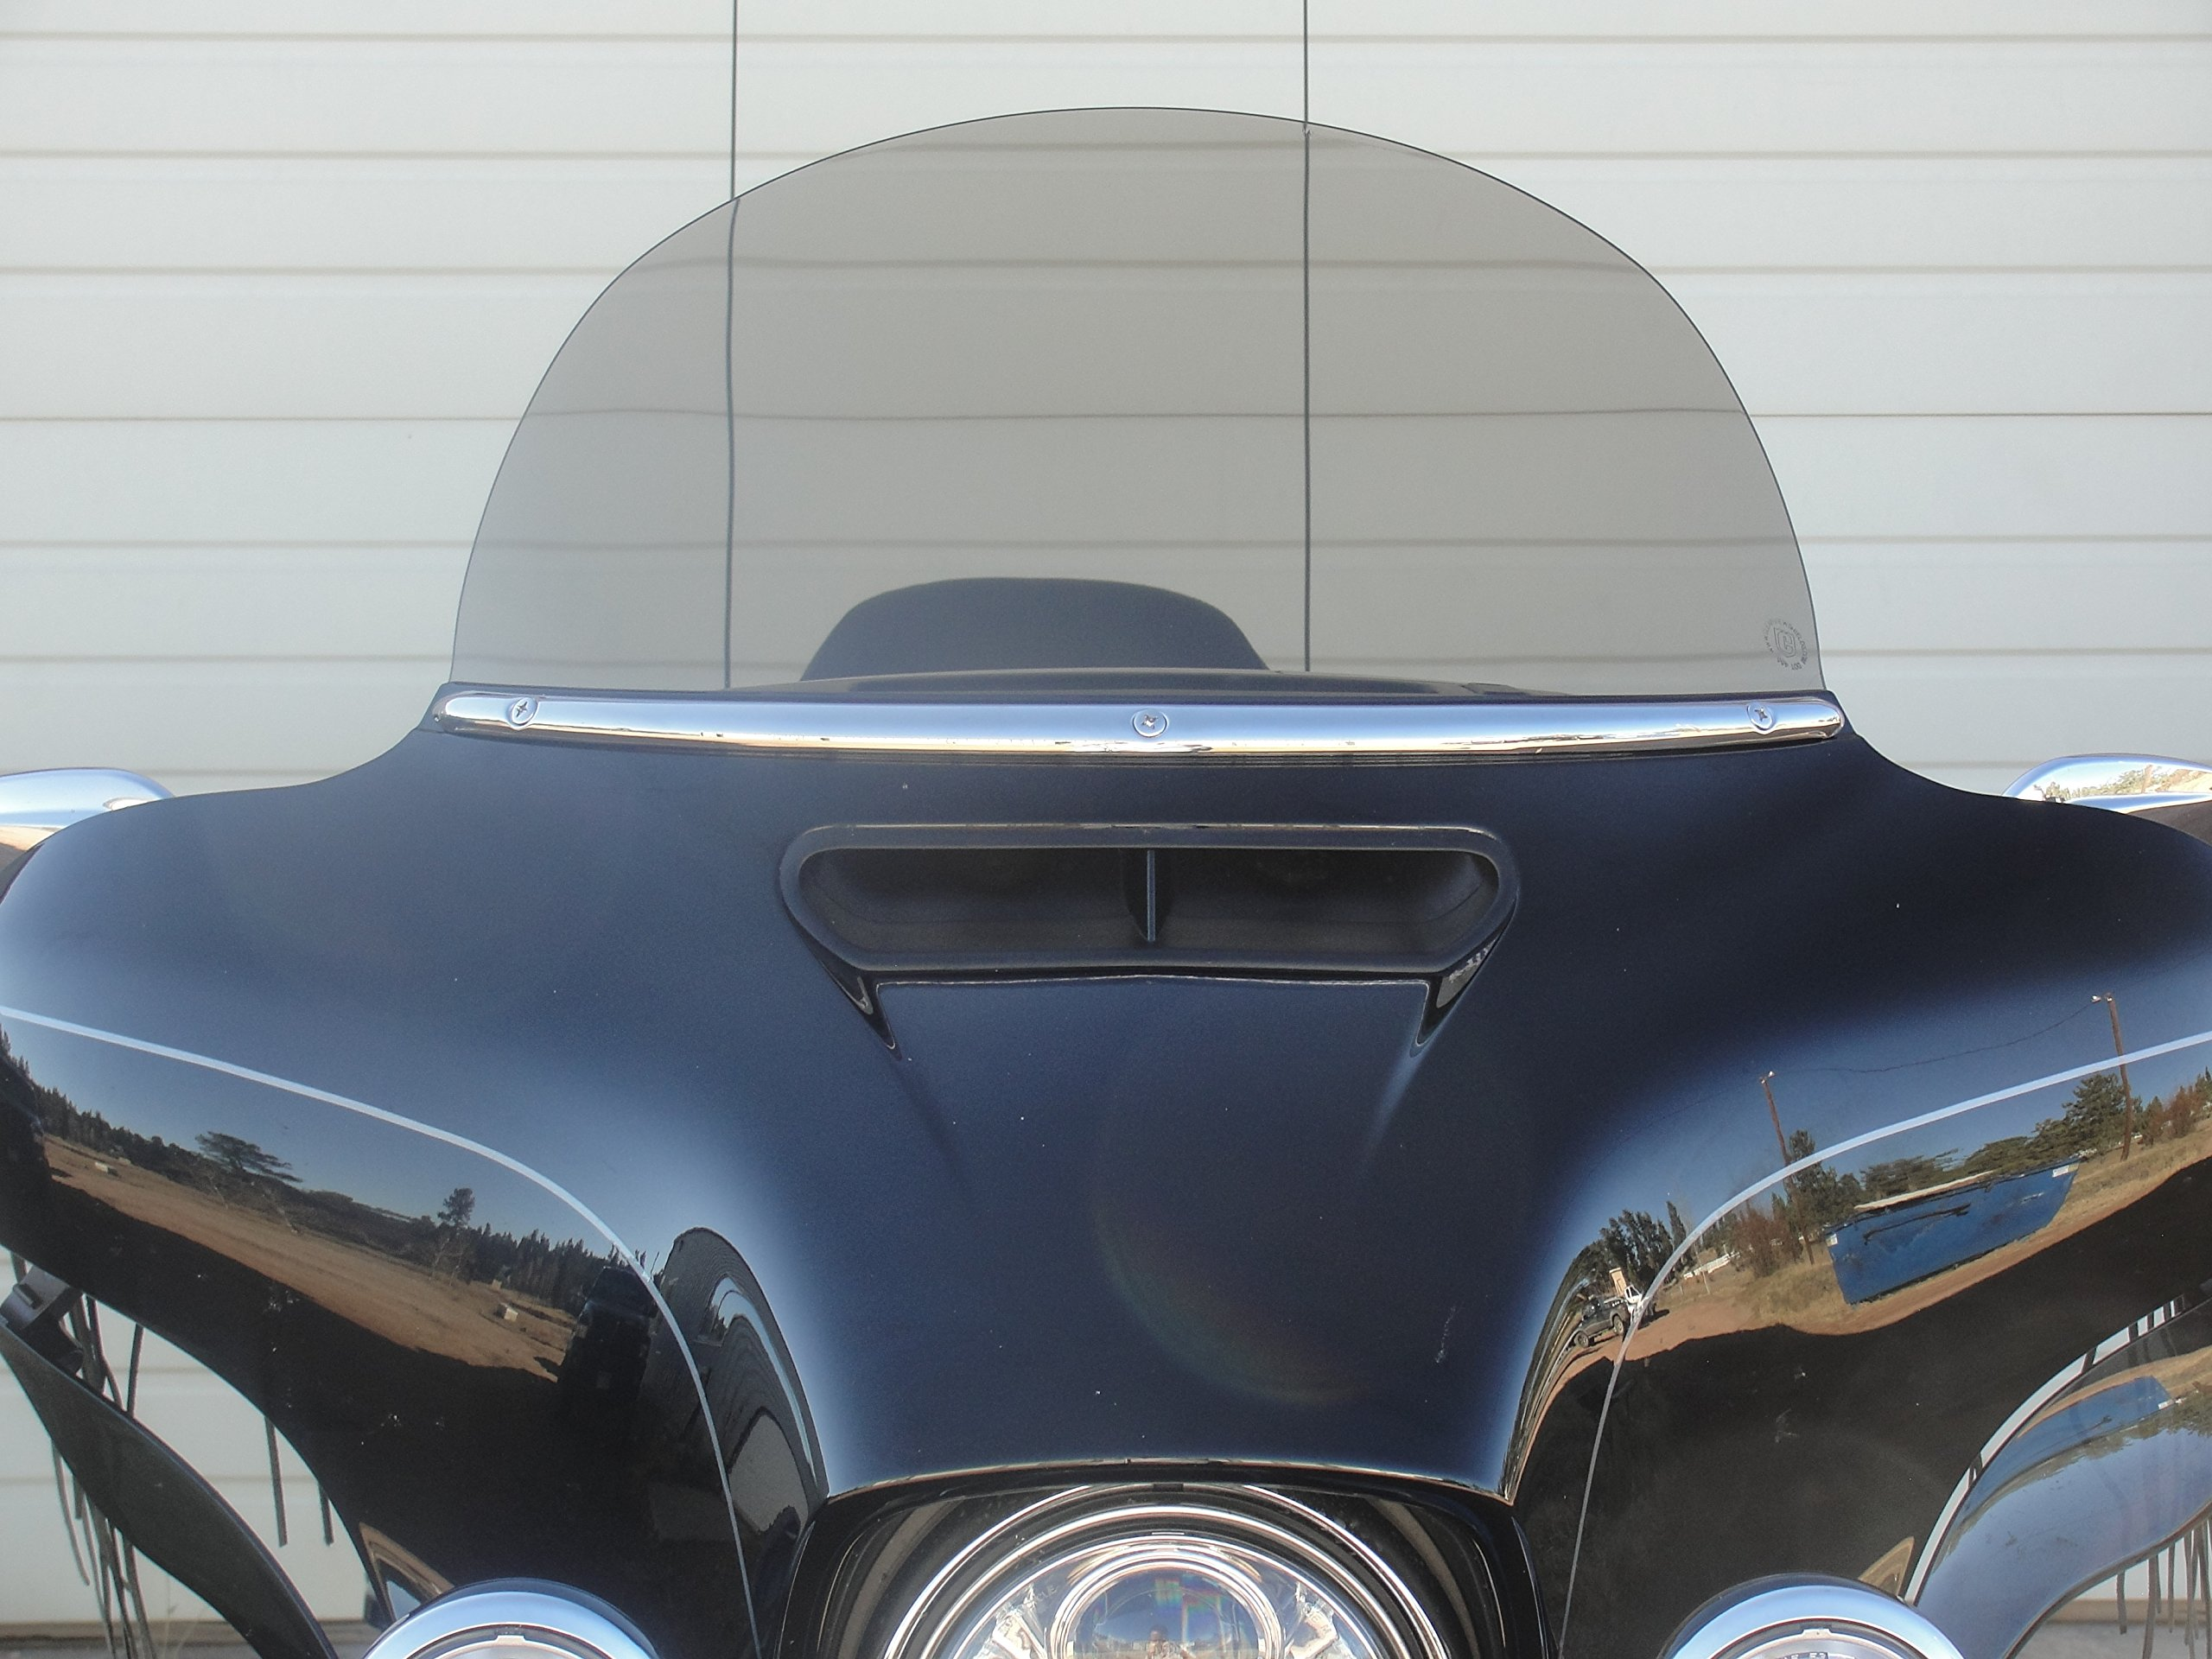 Harley Davidson 10'' light tint windshield for 1996-2013 Street Glide/Electra Glide/Ultra Classic/Tri-Glide, made of superior quality 7130 Makrolan polycarbonate with 50% light transmission